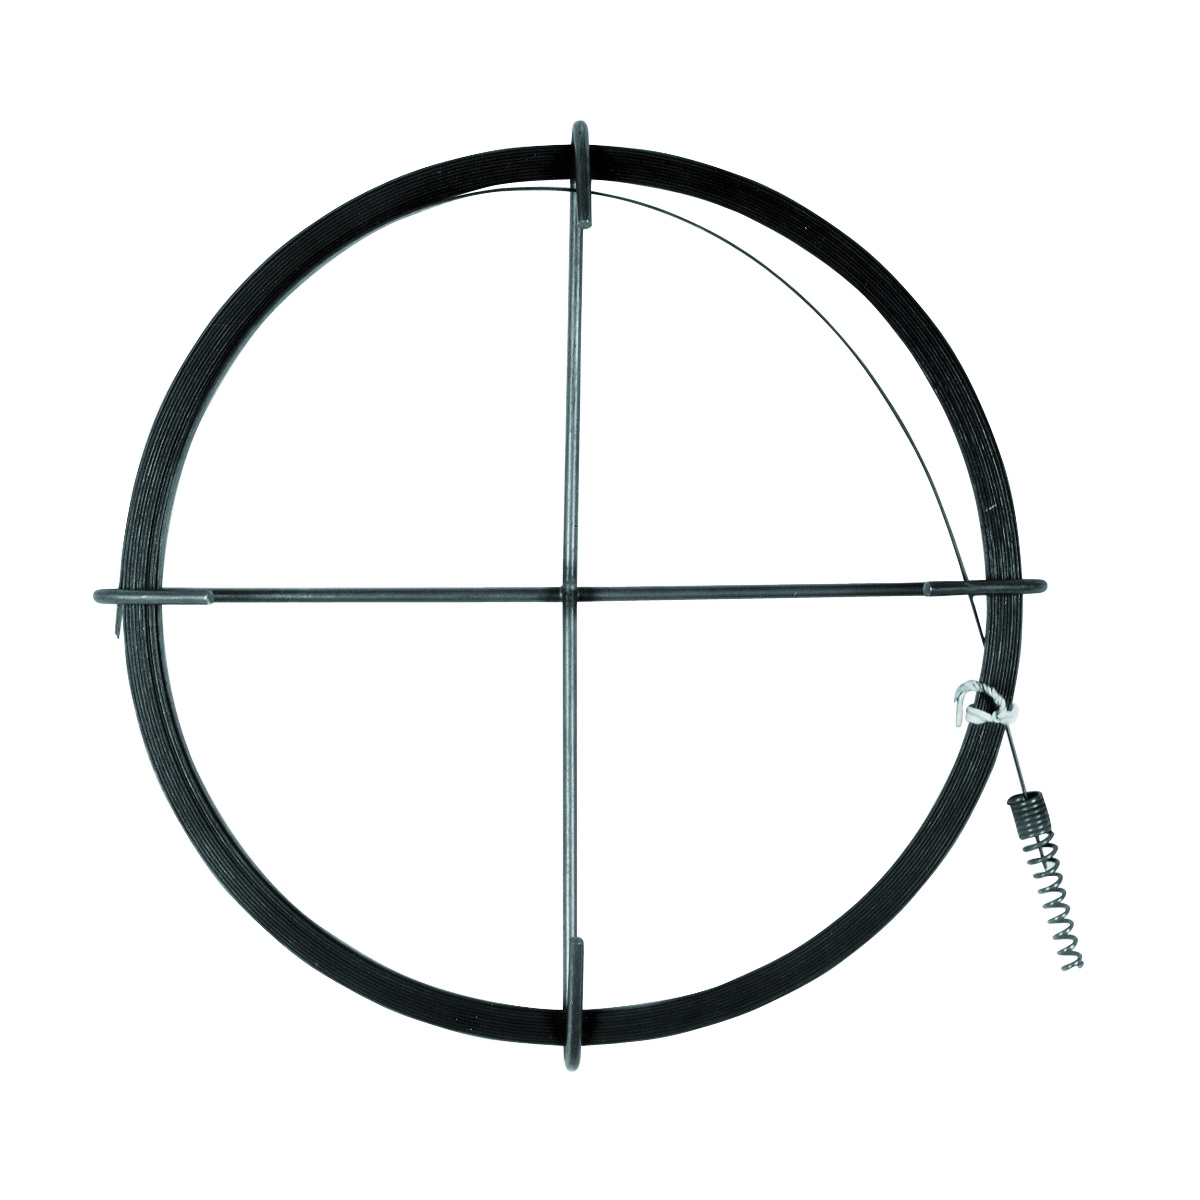 Picture of COBRA TOOLS 02250 Drain Tape, 1/4 in Dia Cable, 25 ft L Cable